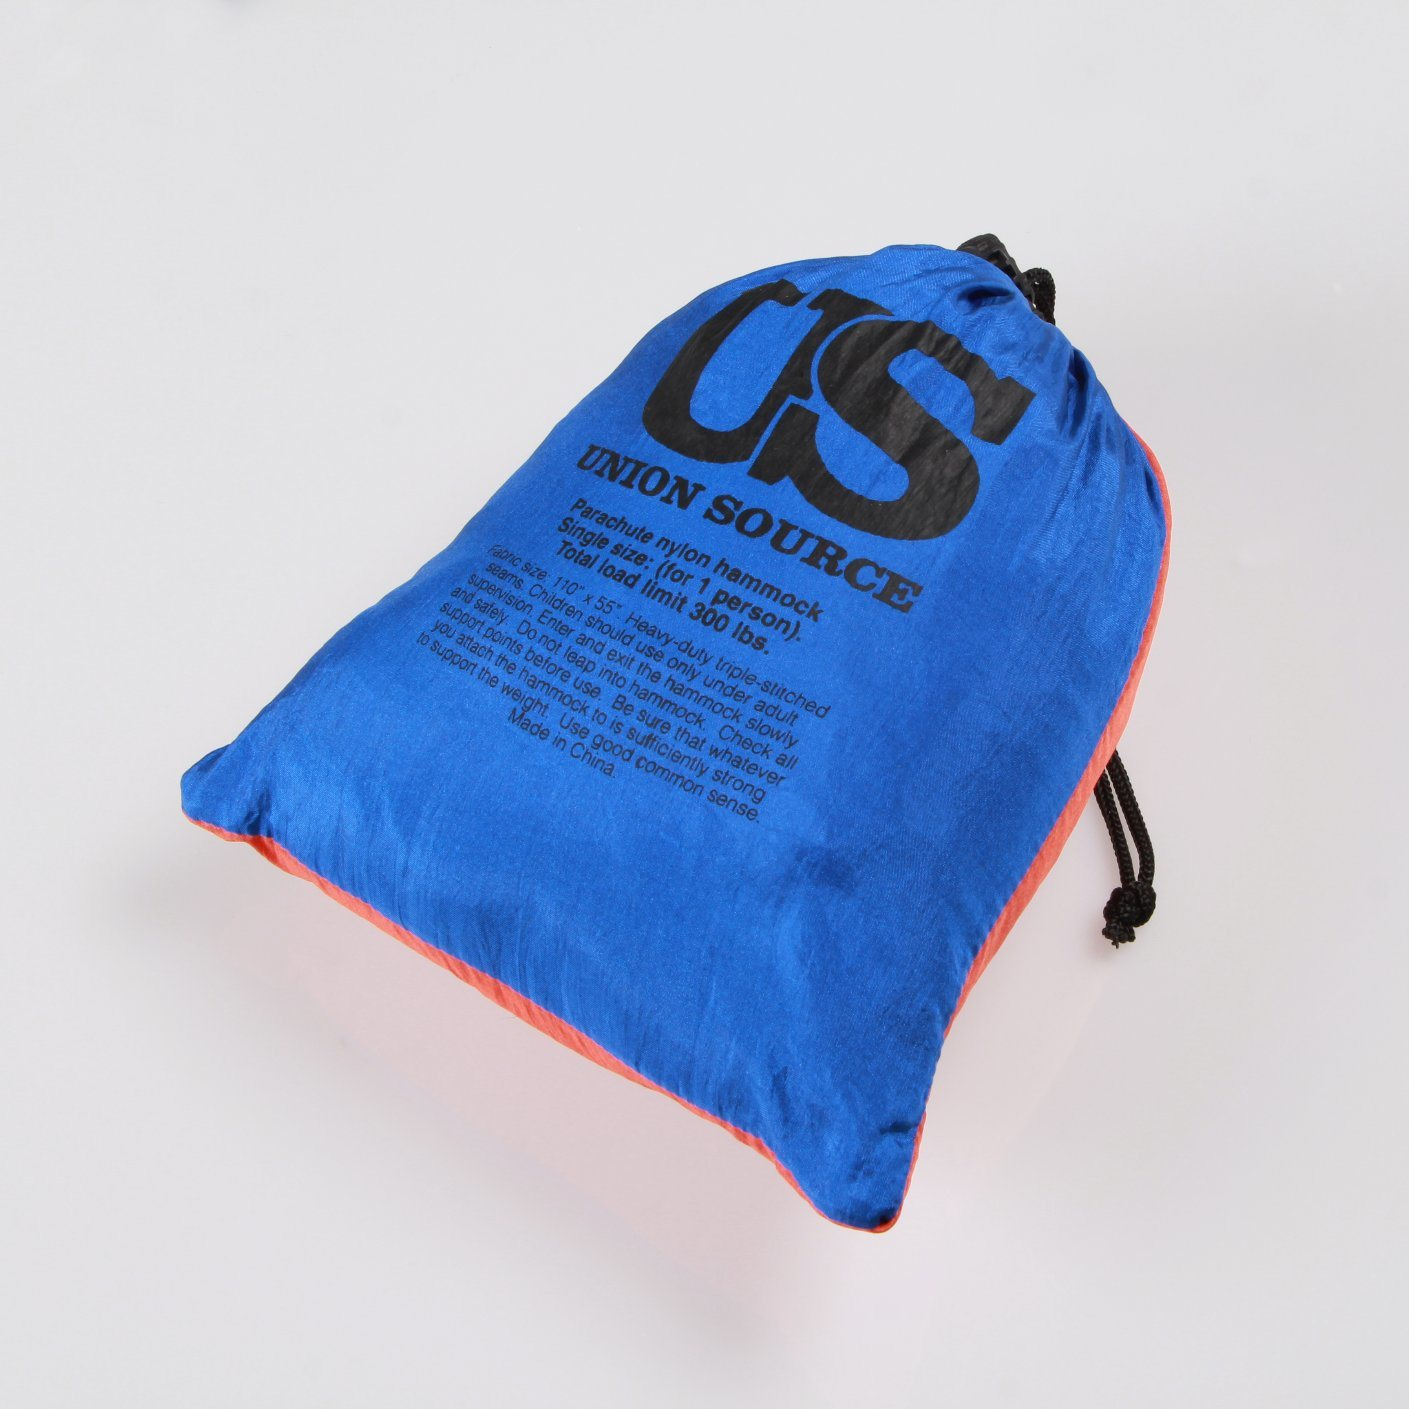 Camping Hammock - Best Quality Gear for Backpacking Survival or Travel - Portable Lightweight Parachute Nylon